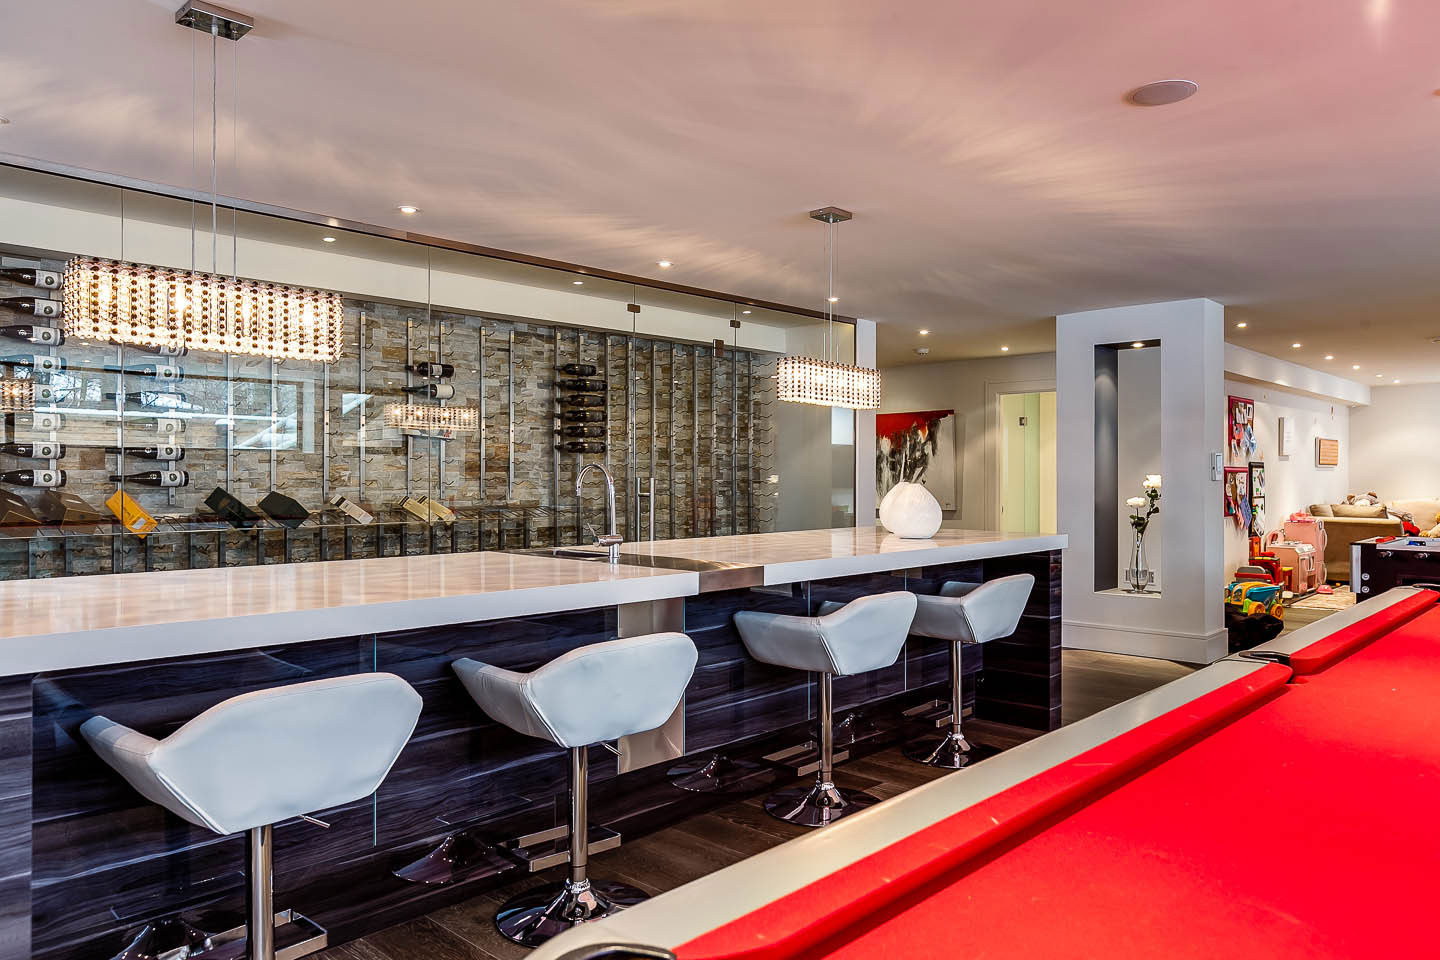 Games Room, Bar, Wine Store, Contemporary House in Toronto, Canada